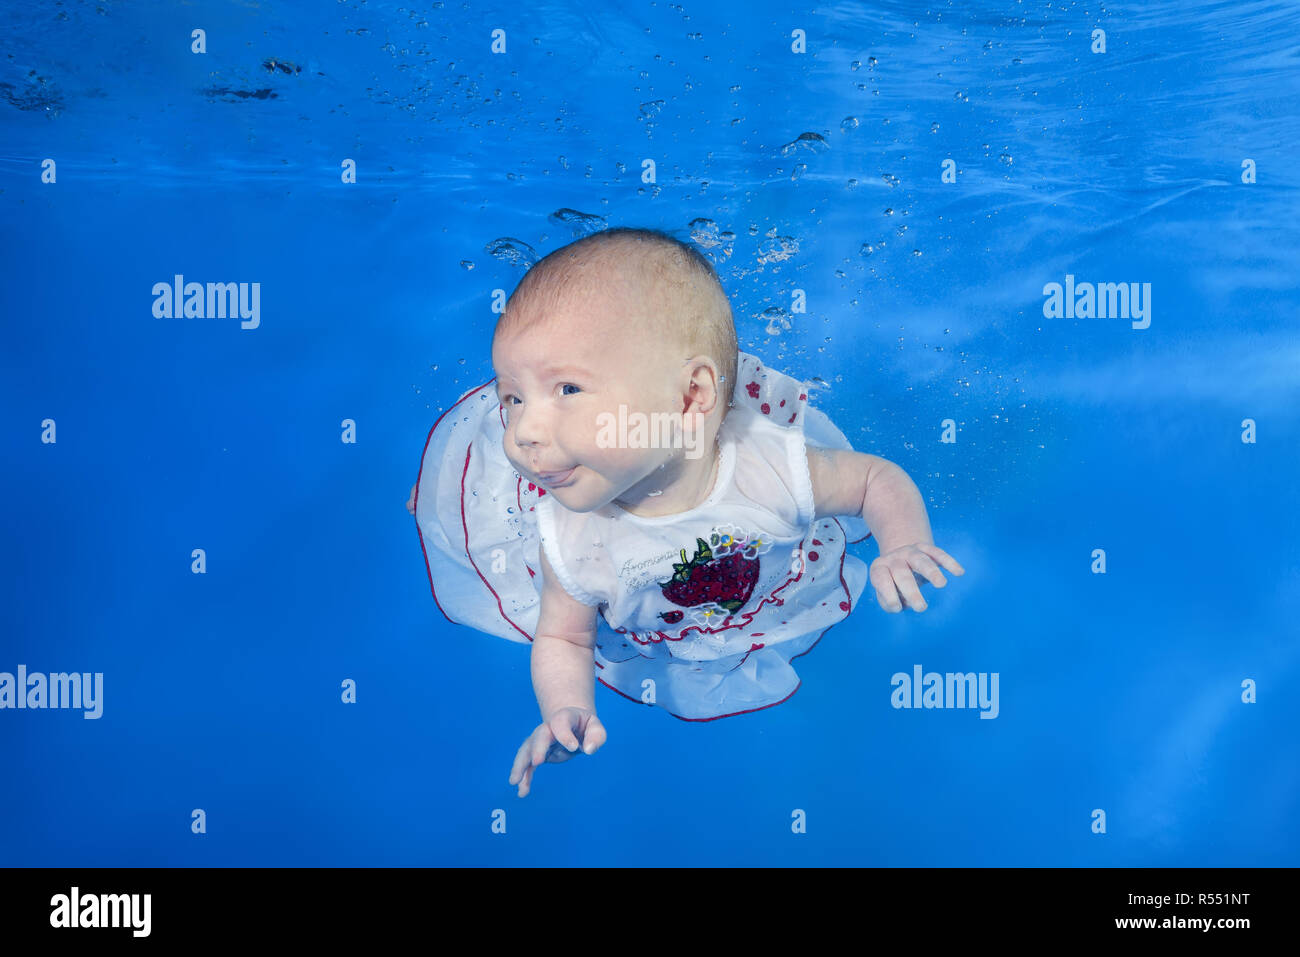 1.5 months girl in a white dress swims underwater in the pool on a blue water background. Healthy family lifestyle and children water sports activity. - Stock Image